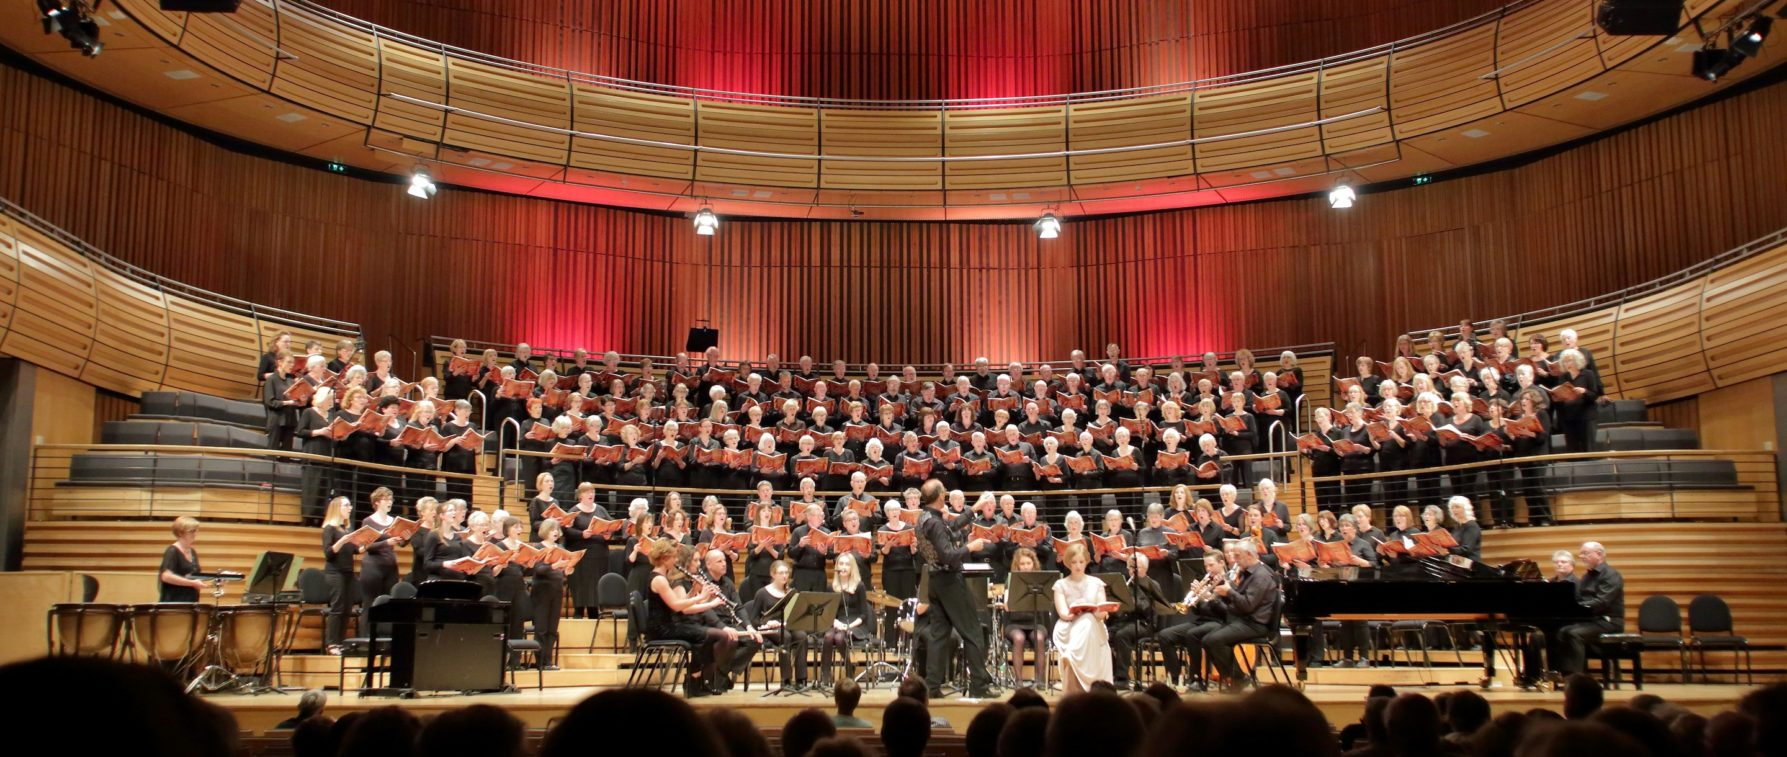 The Choir perform as part of a celebration at Sage Gateshead